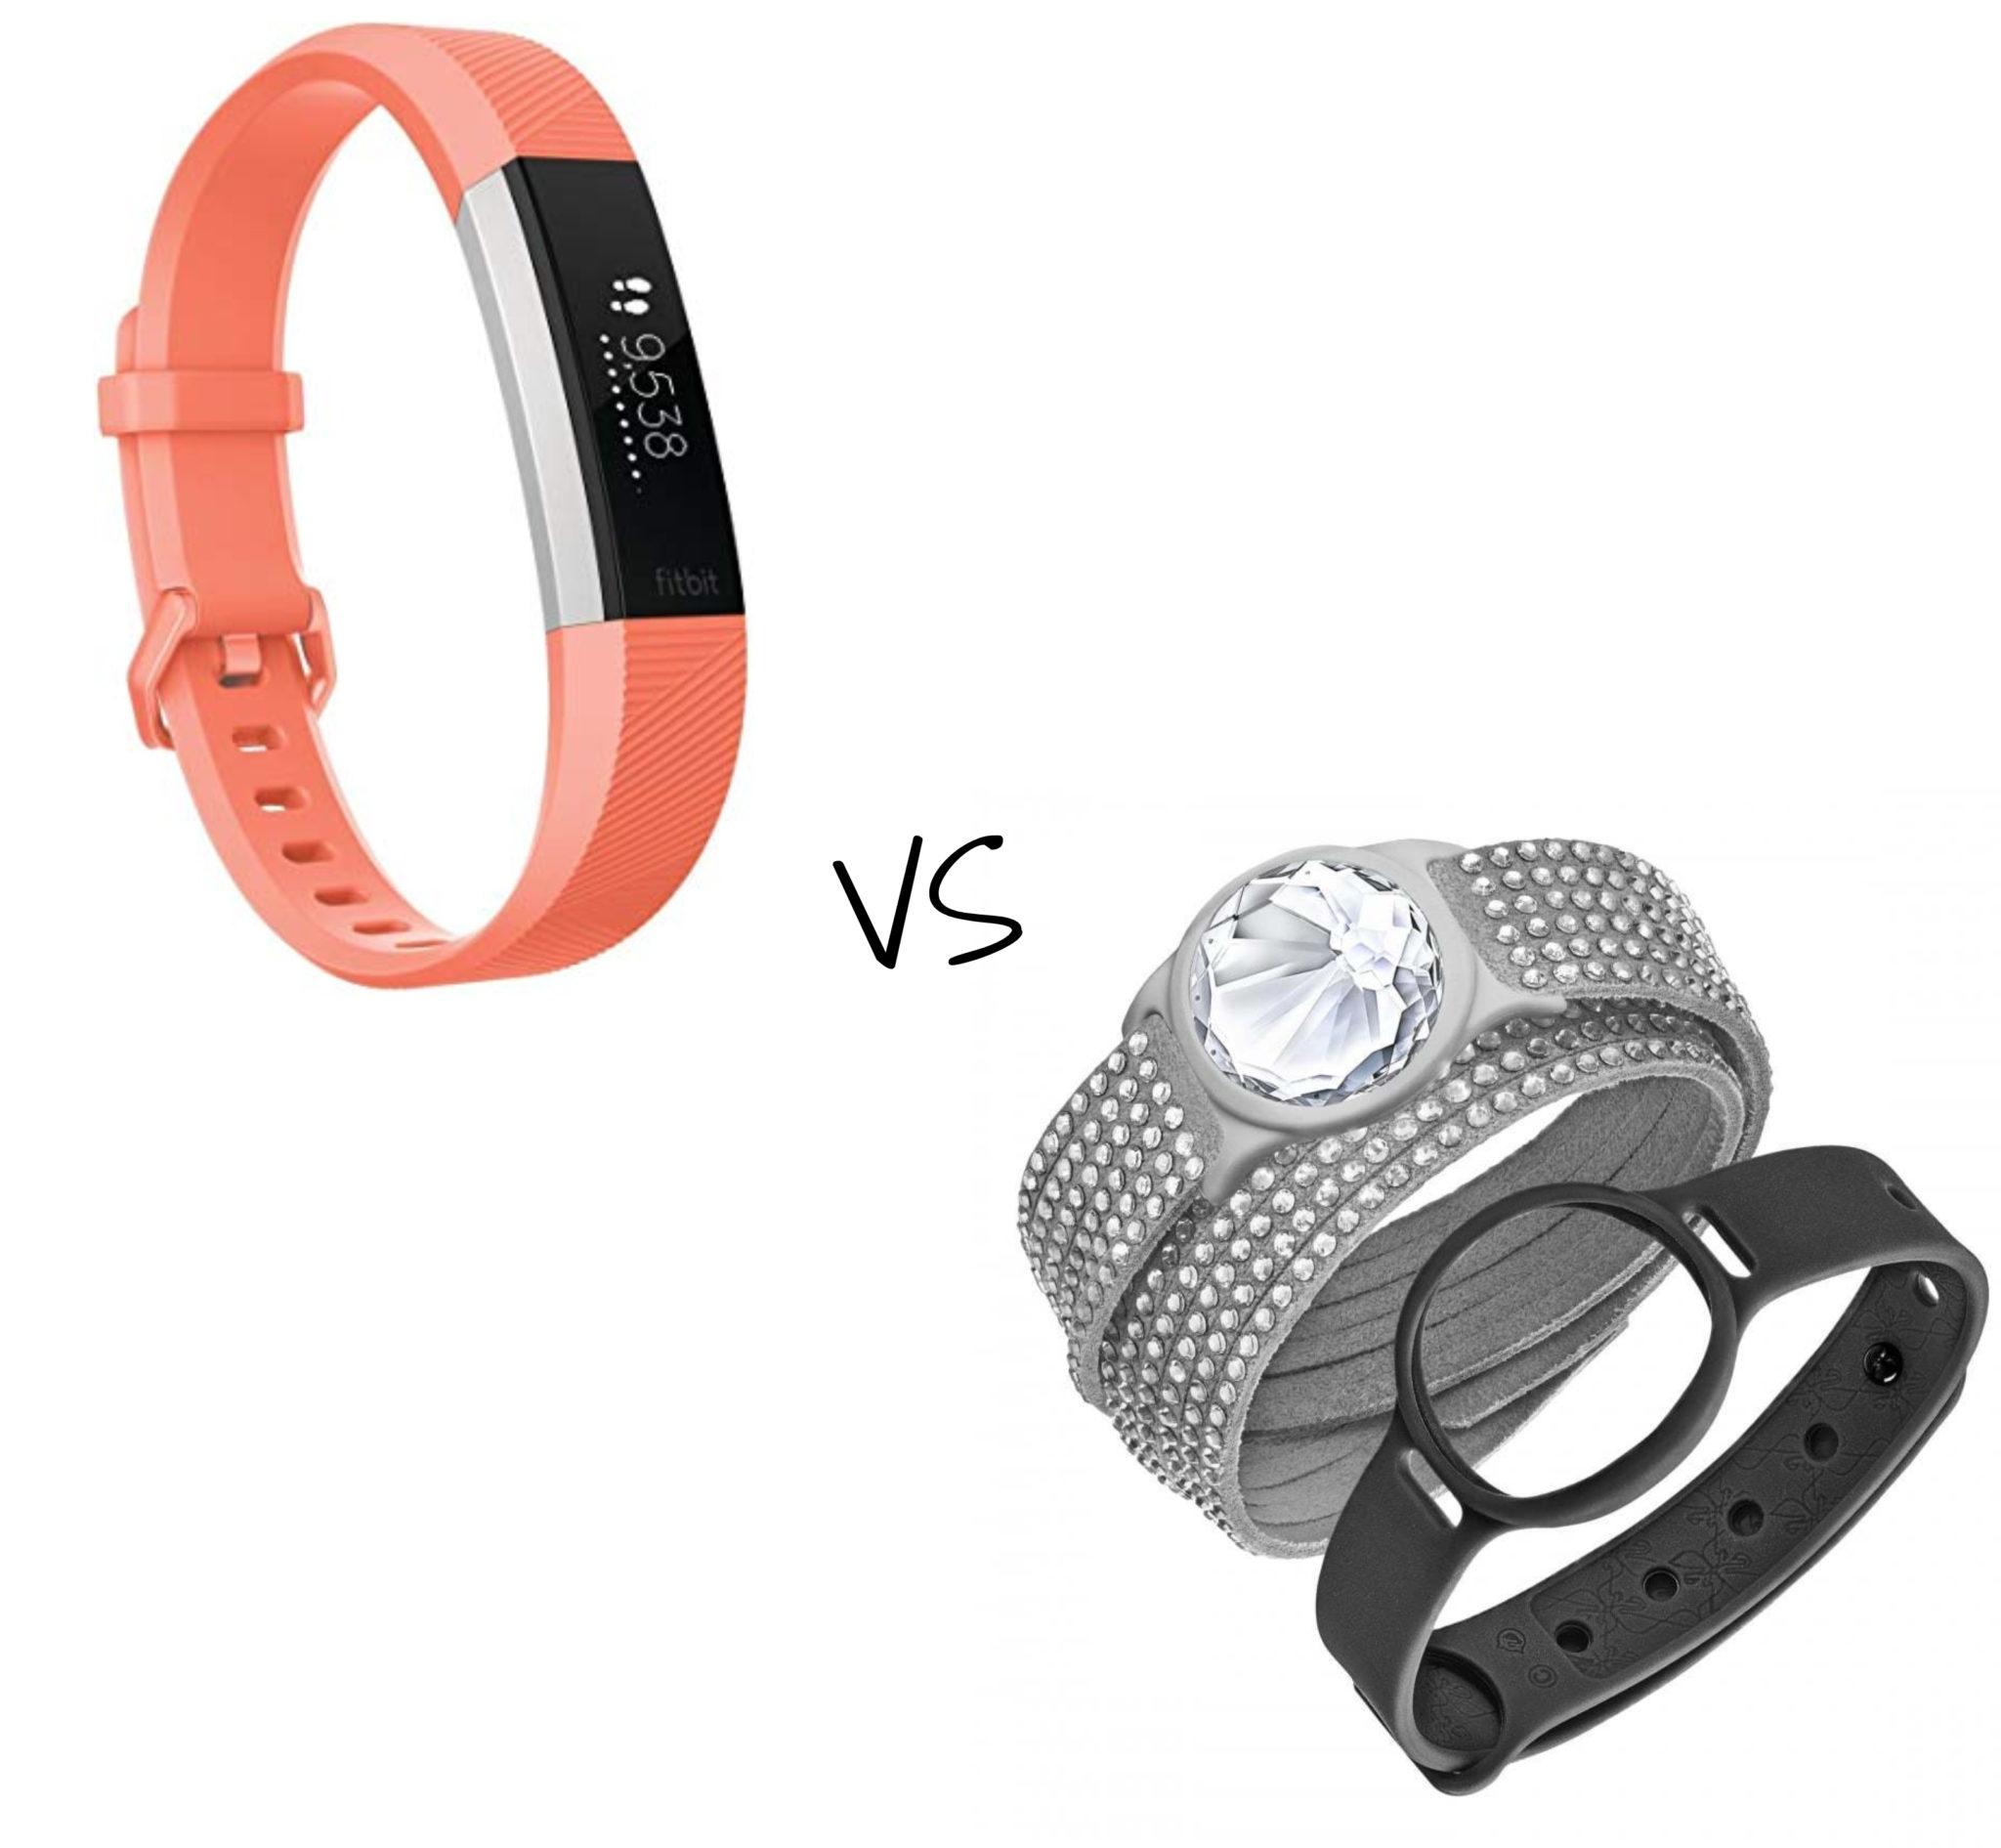 comparatif-fibit-vs-swarovsky